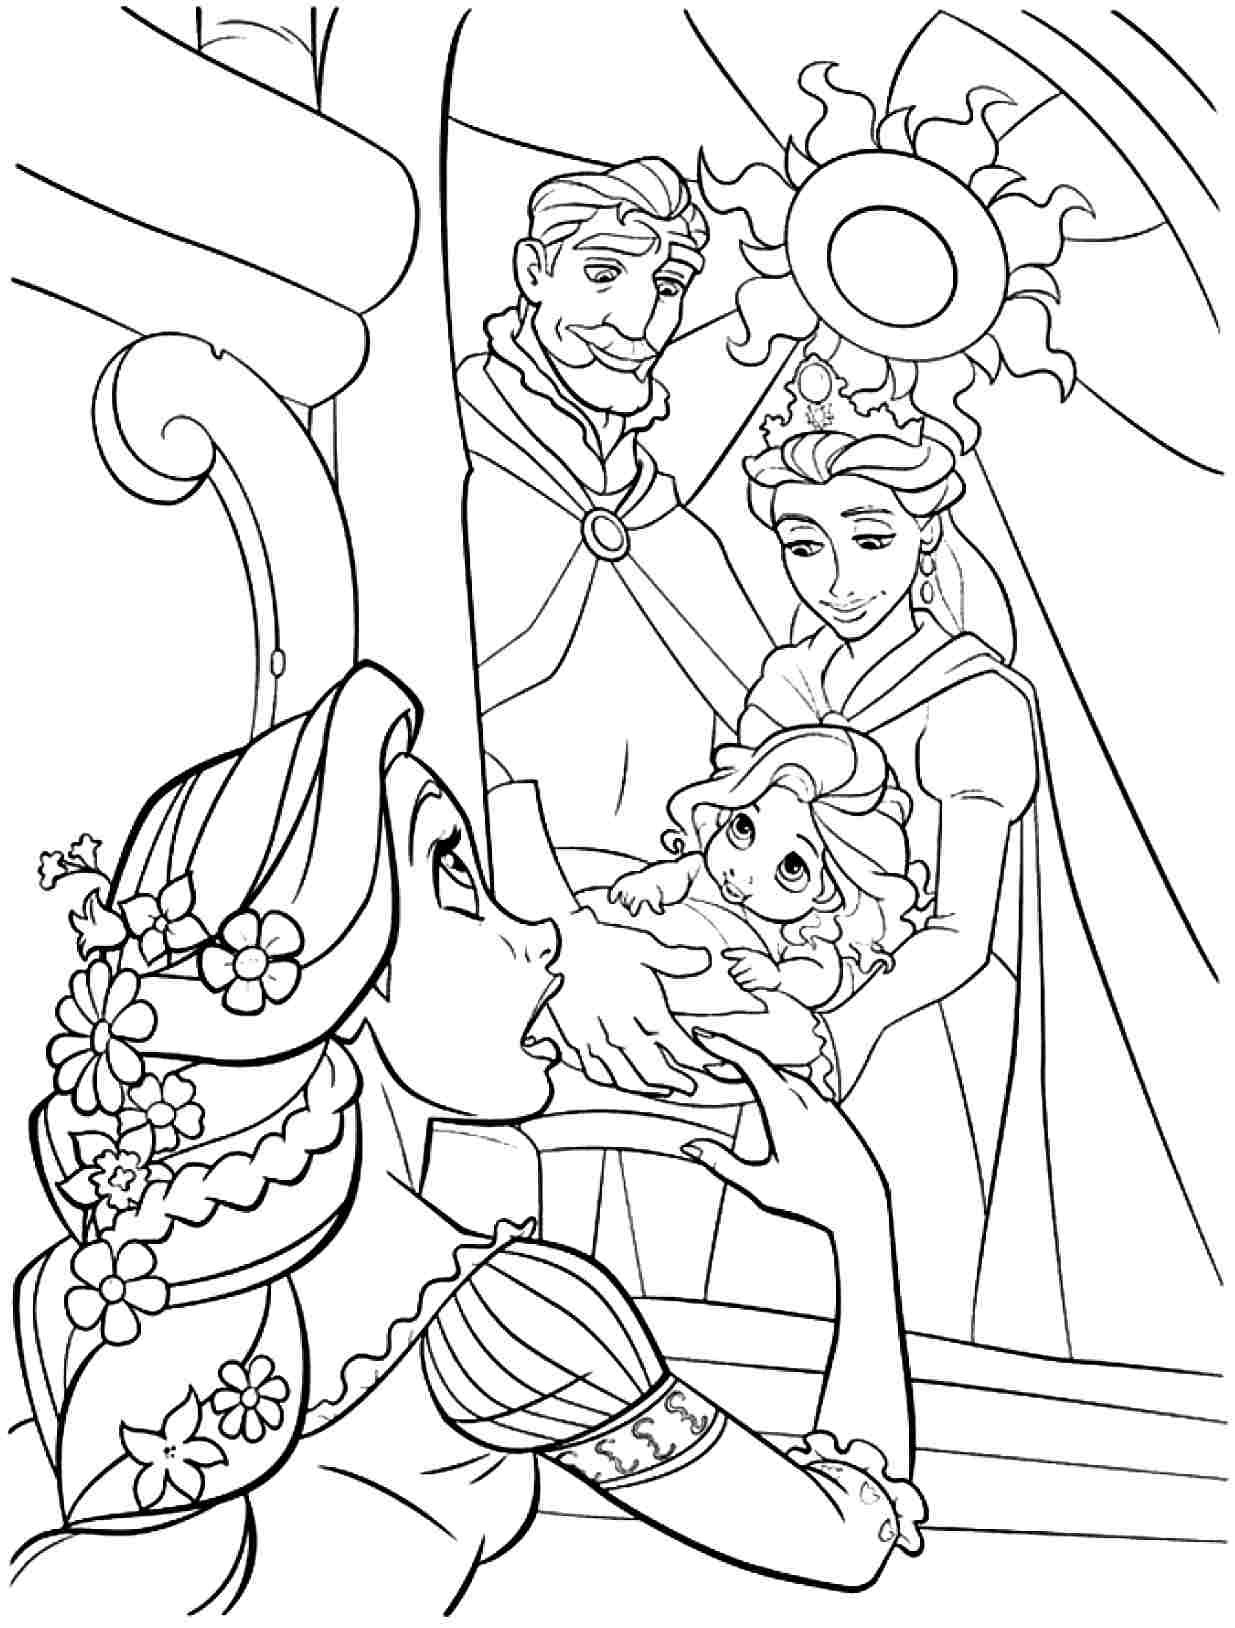 disney coloring pages rapunzel nice rapunzel and flynn ready coloring page disney pages coloring rapunzel disney